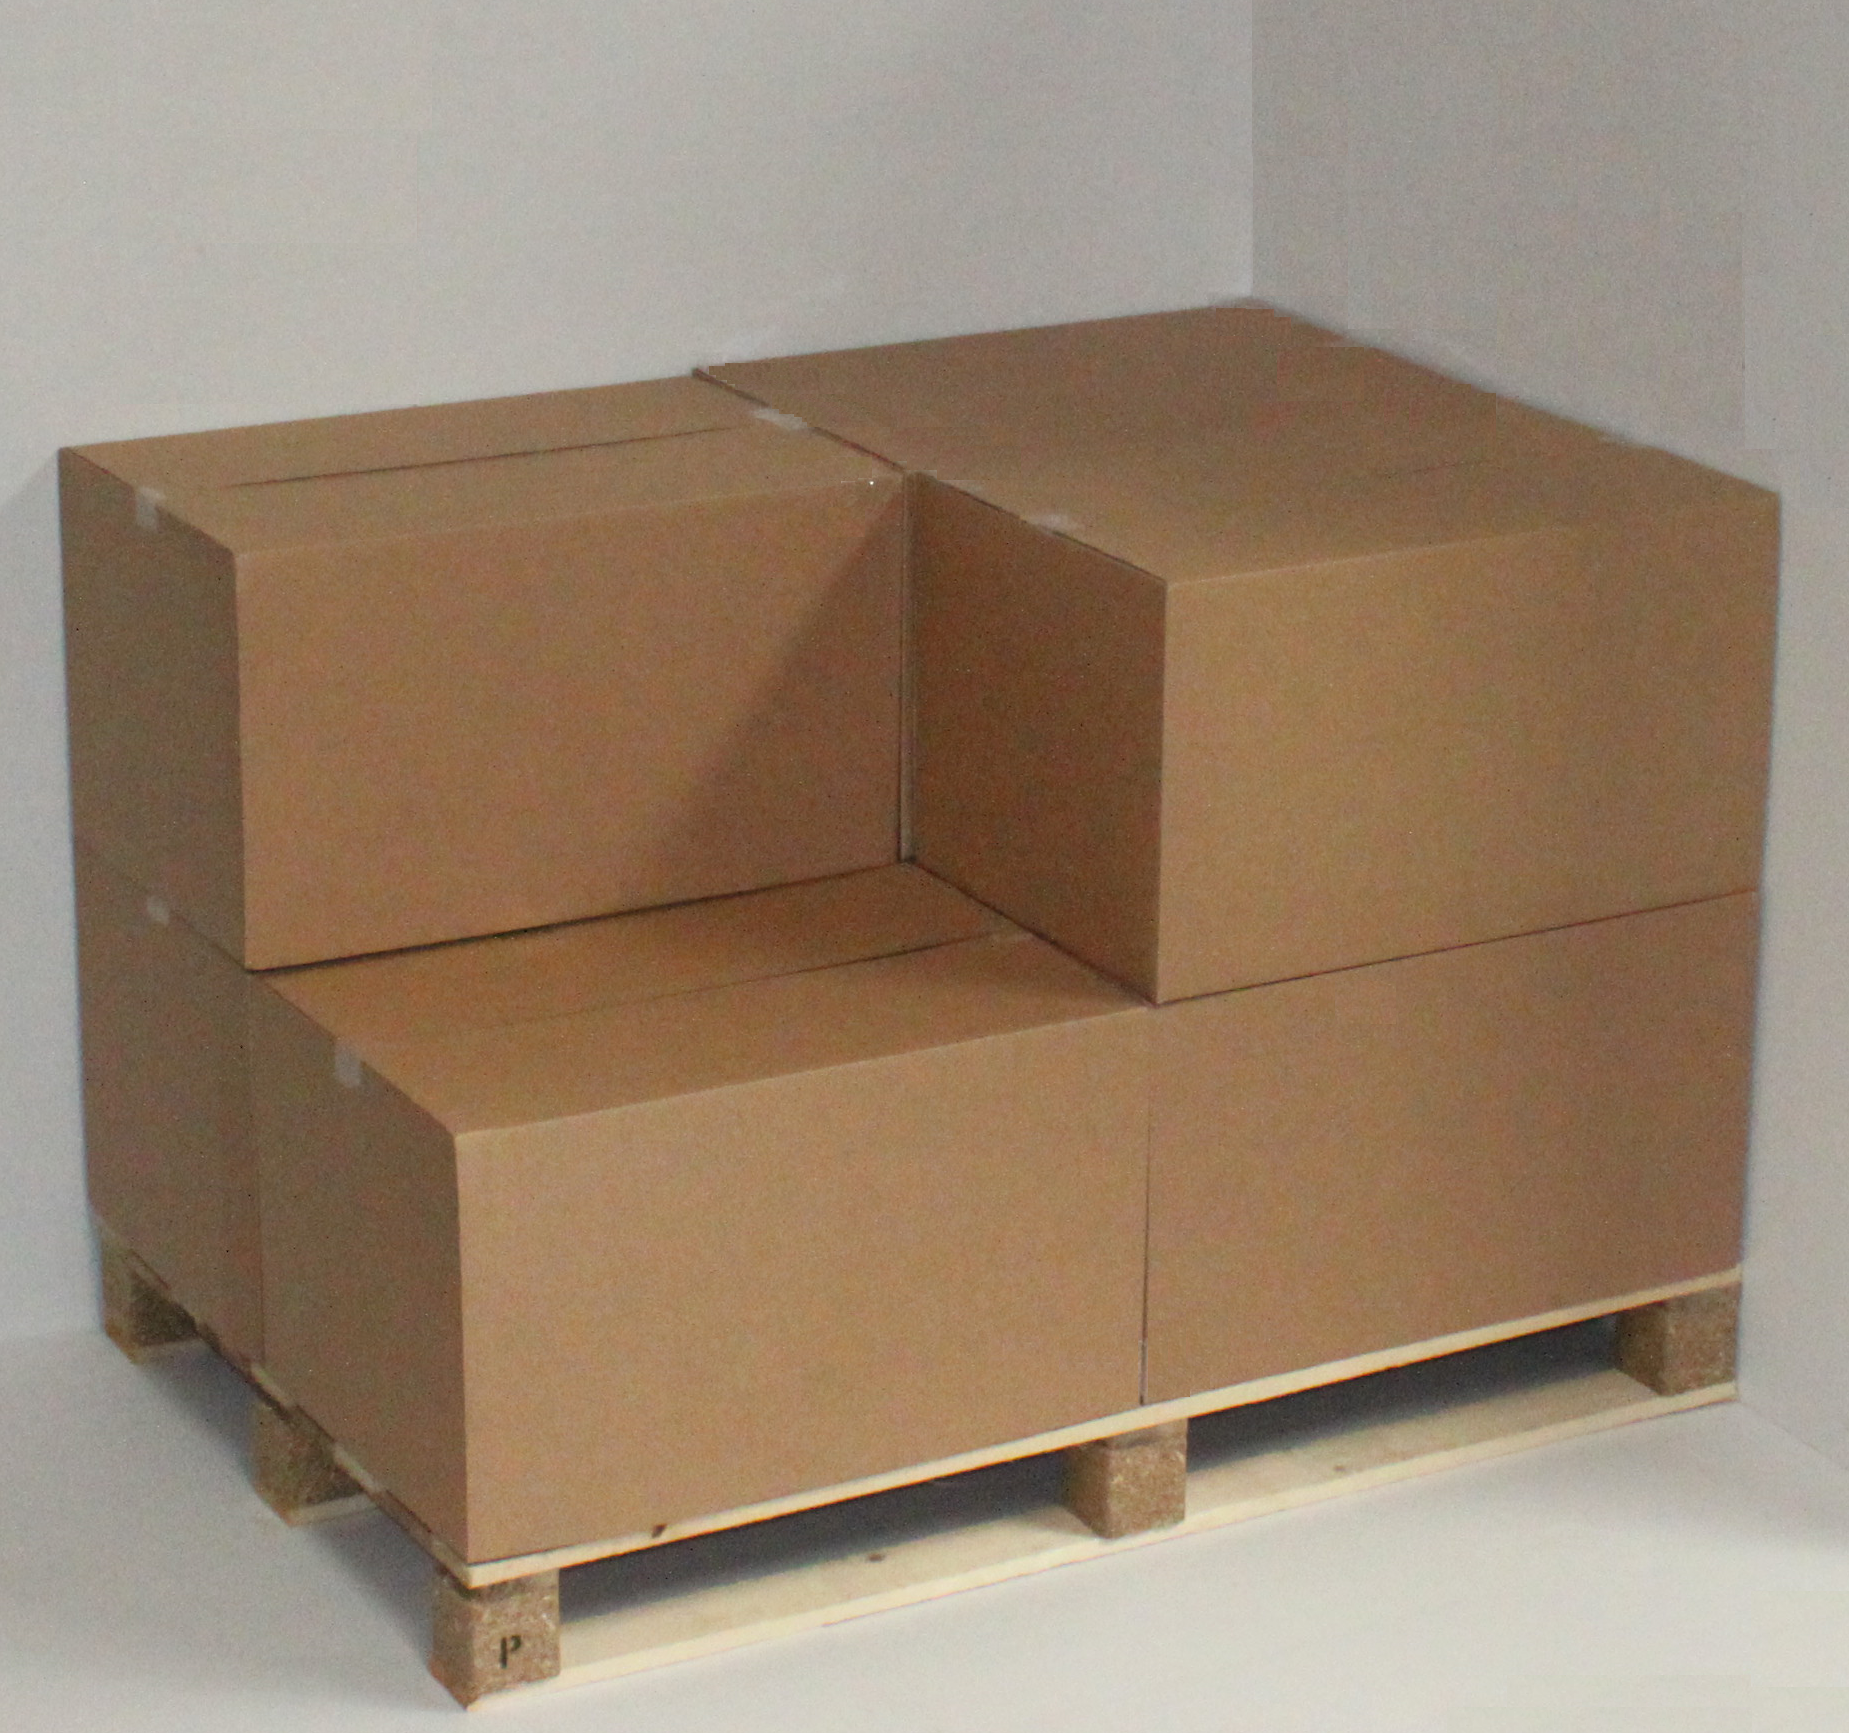 Perfect Fit Boxes For Europallet And Standard Pallet 3